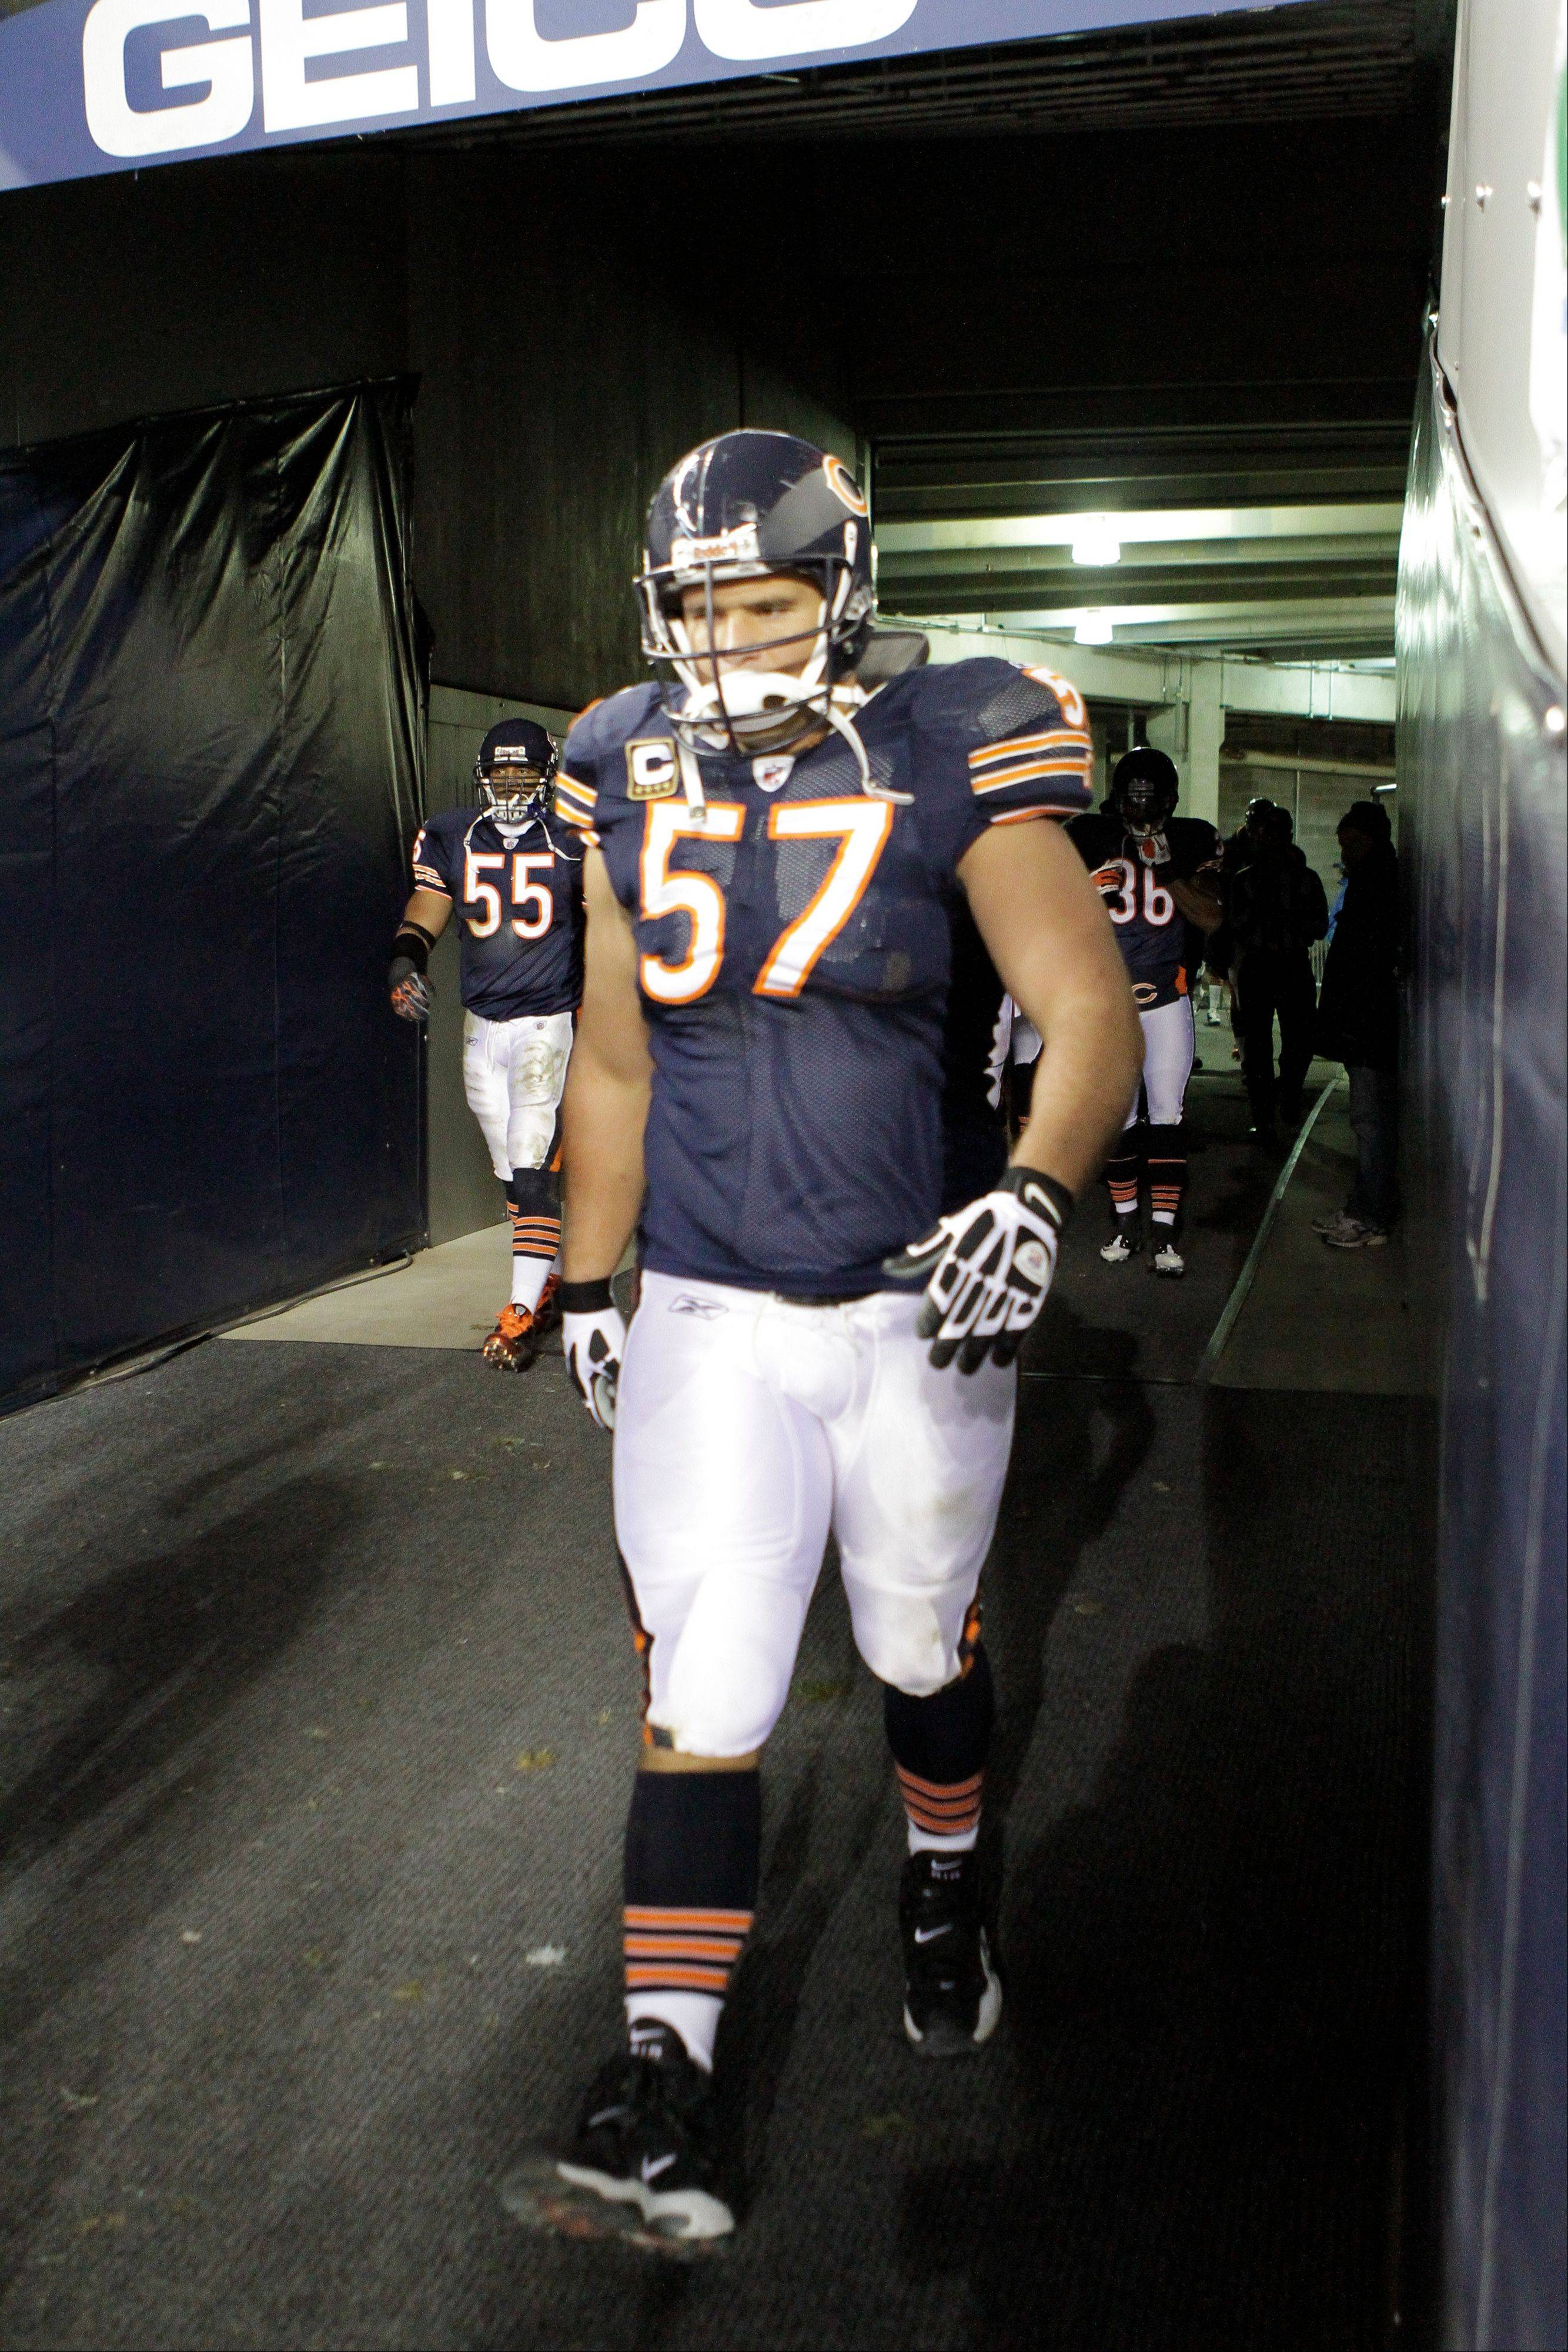 The Bears have said goodbye to veteran center Olin Kreutz, who had started 134 consecutive games for the team.